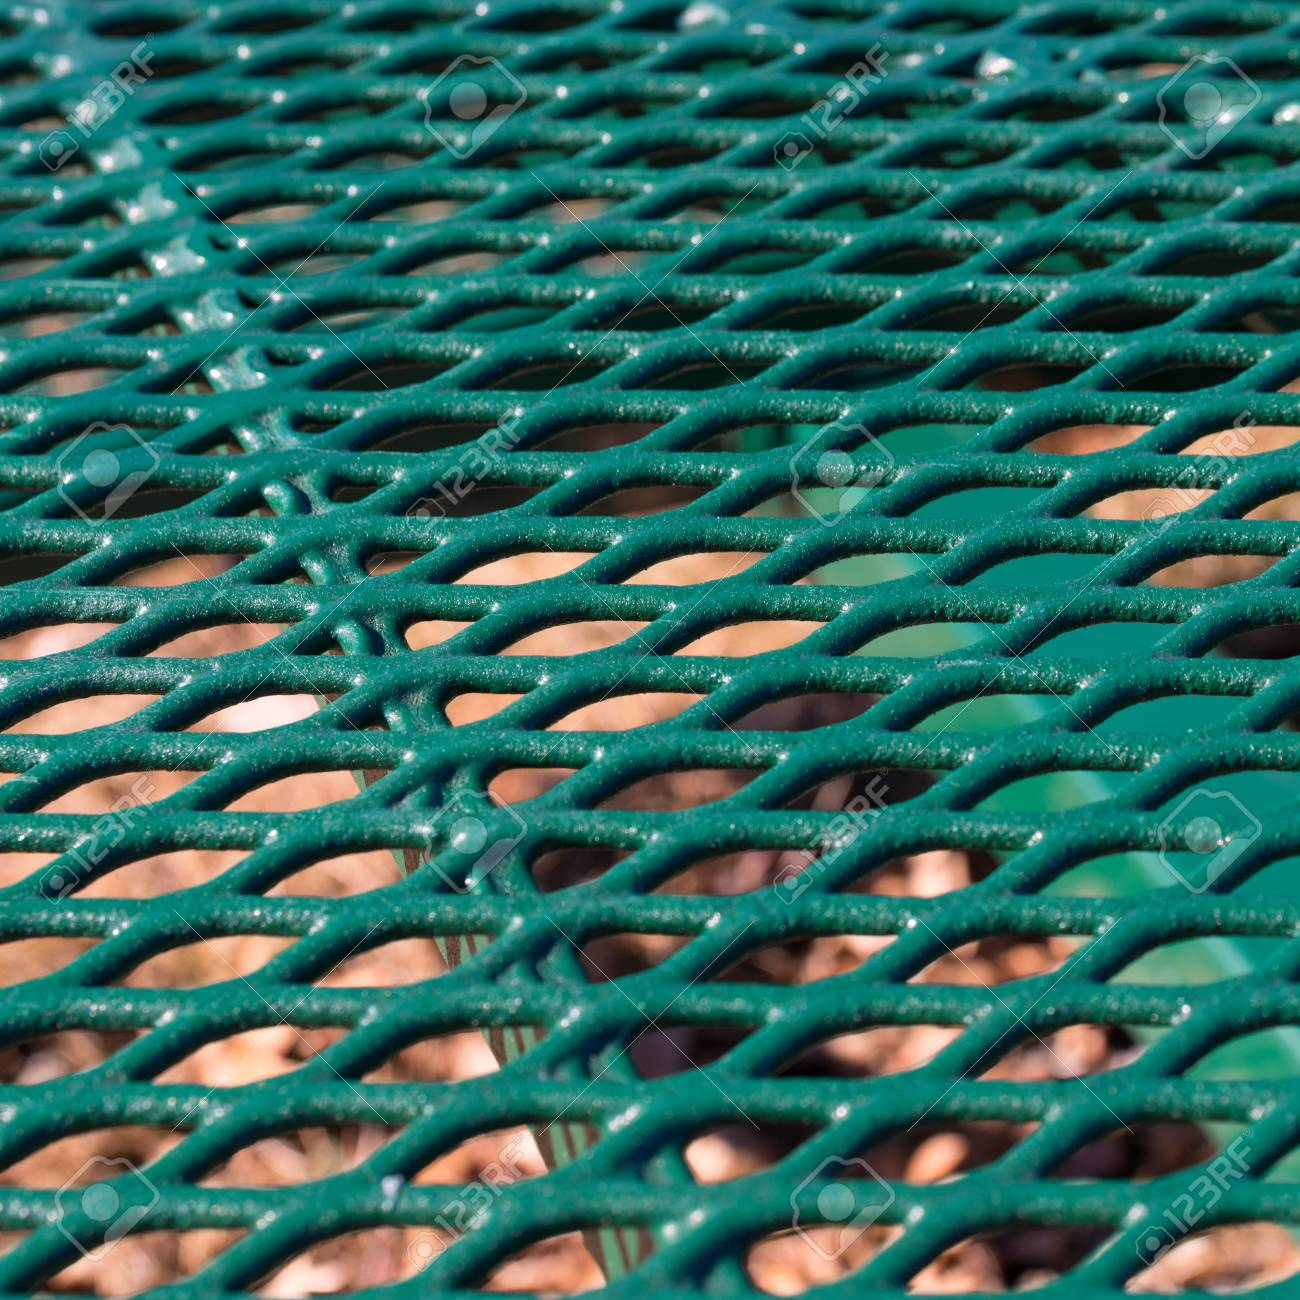 Close View Of A Green Painted Metal Mesh Picnic Table Stock Photo - Mesh picnic table